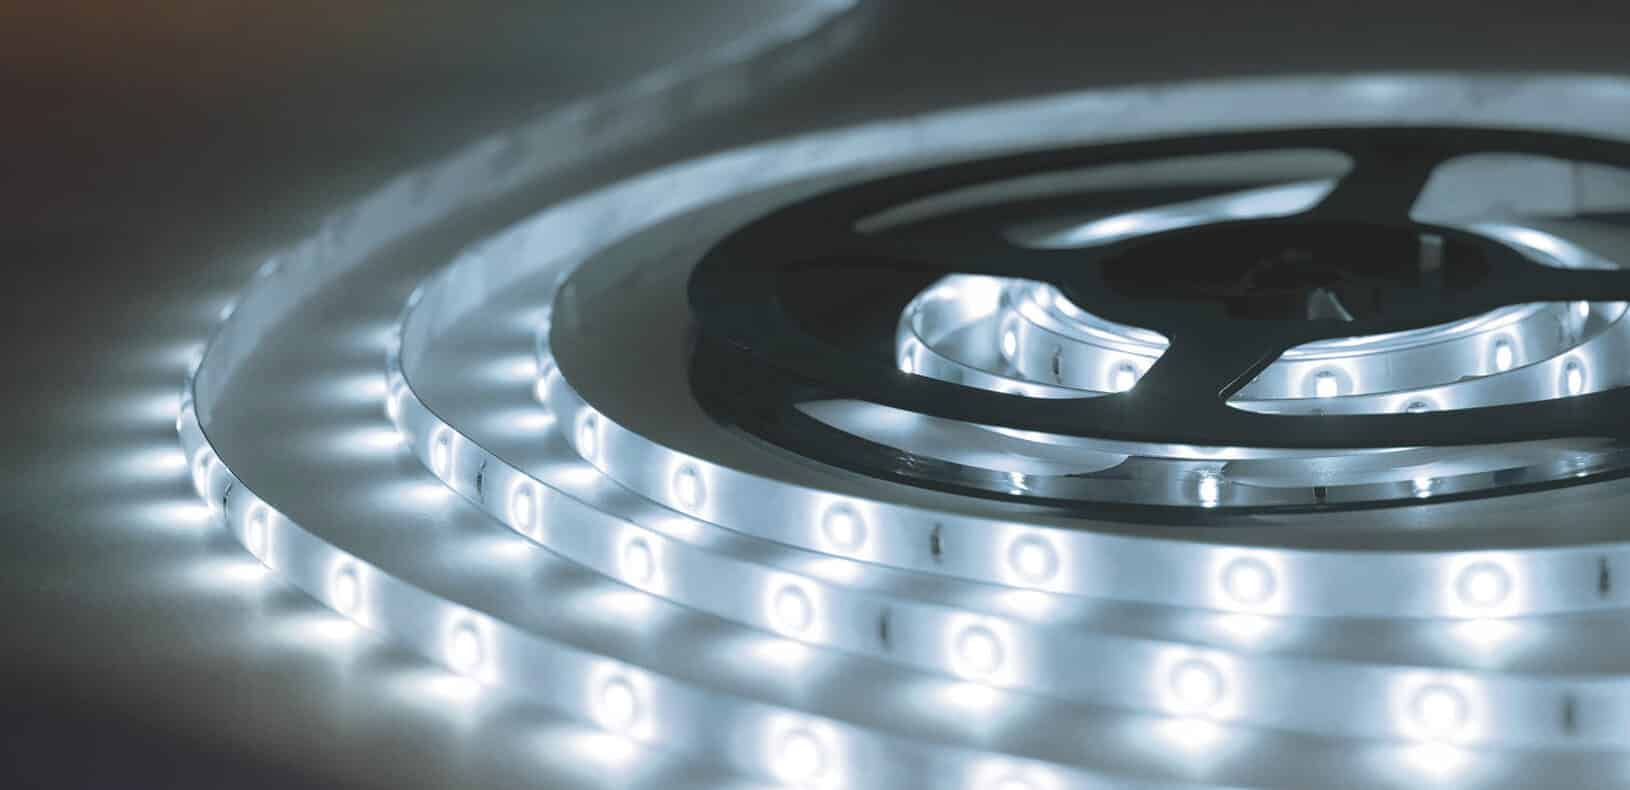 SMD5050 LED Strip Lights for high-end lighting projects. CCT 1800-6500K to RGB & RGBWWW, 5-40W/mtr, 120⁰ Beam Angle & high efficiency